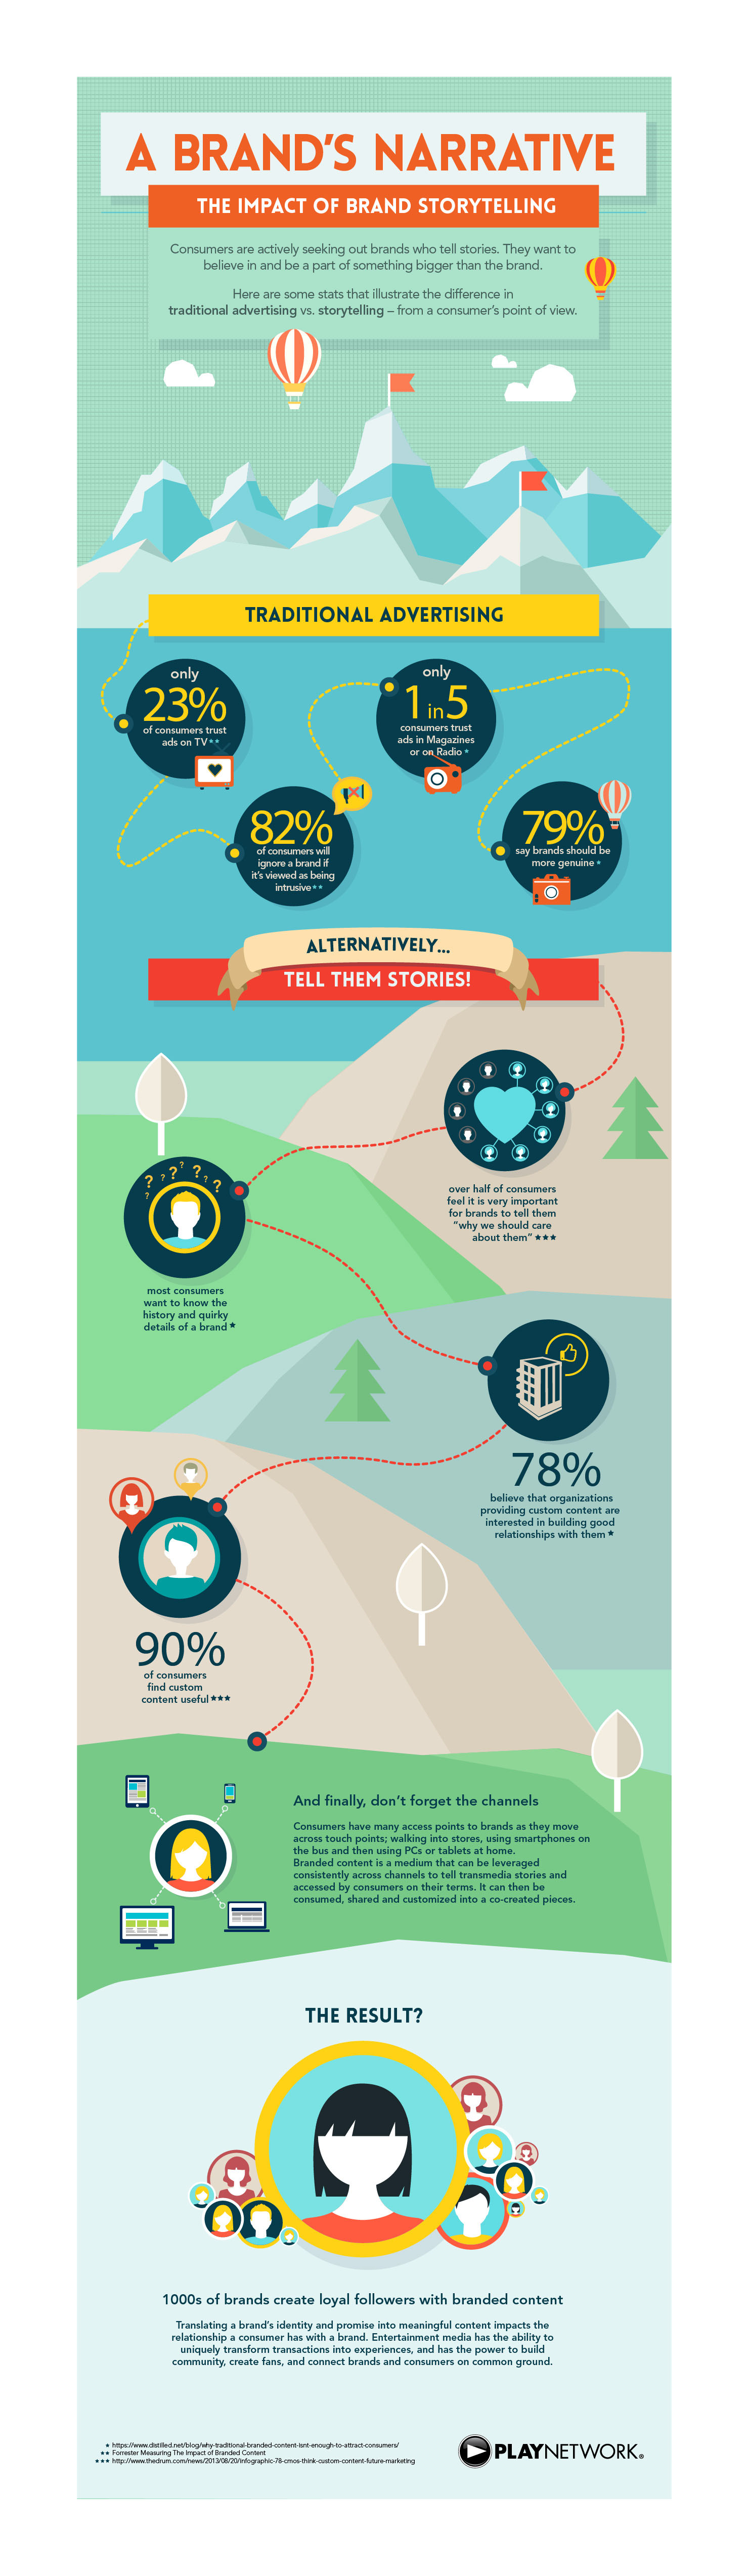 Play Network Storytelling Infographic